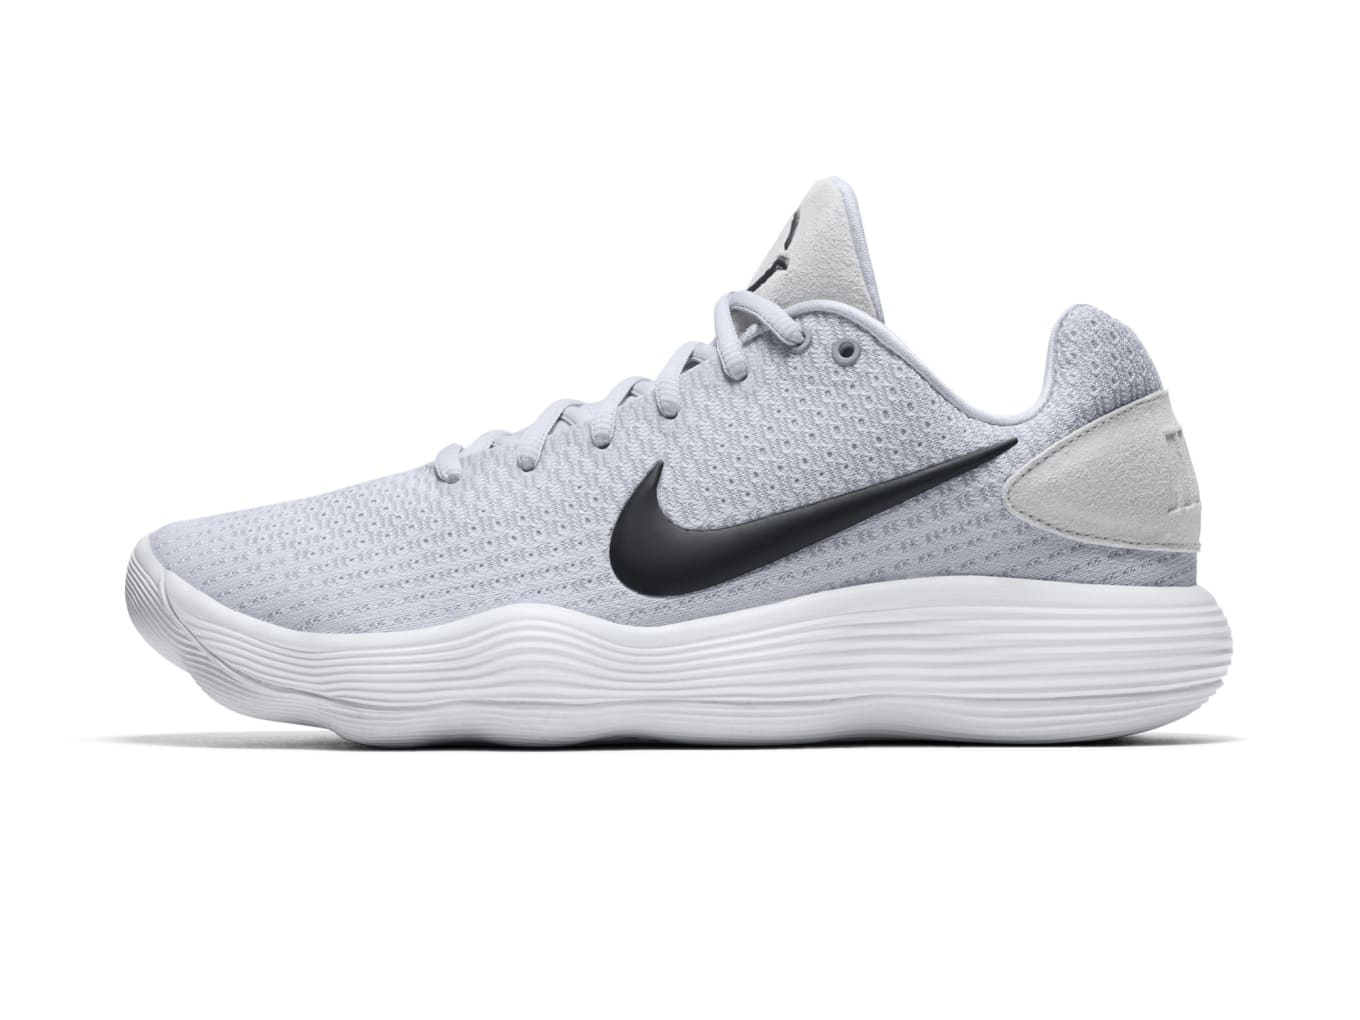 118f2c65bf0b Nike Hyperdunk 2017 Low Official Images